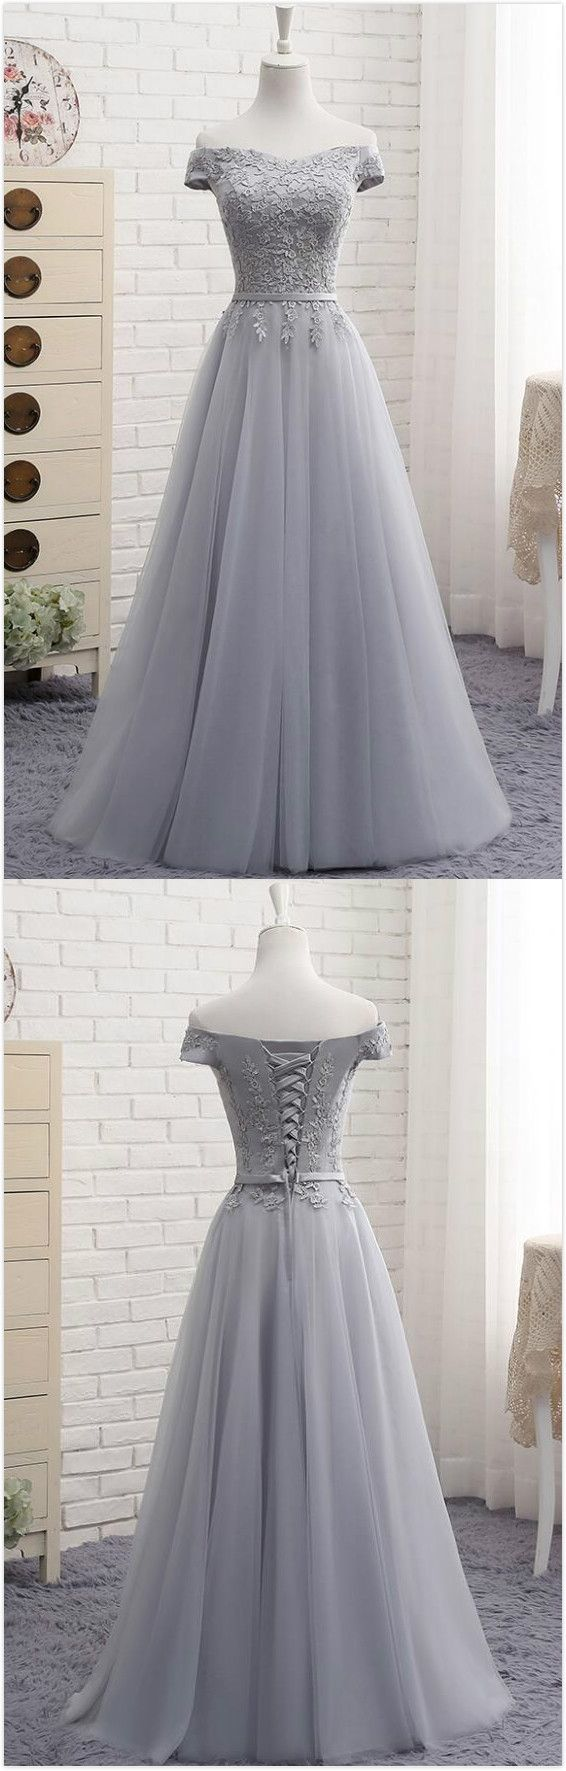 Gray Tulle Prom Dresses,Lace Prom Dress,A Line Prom